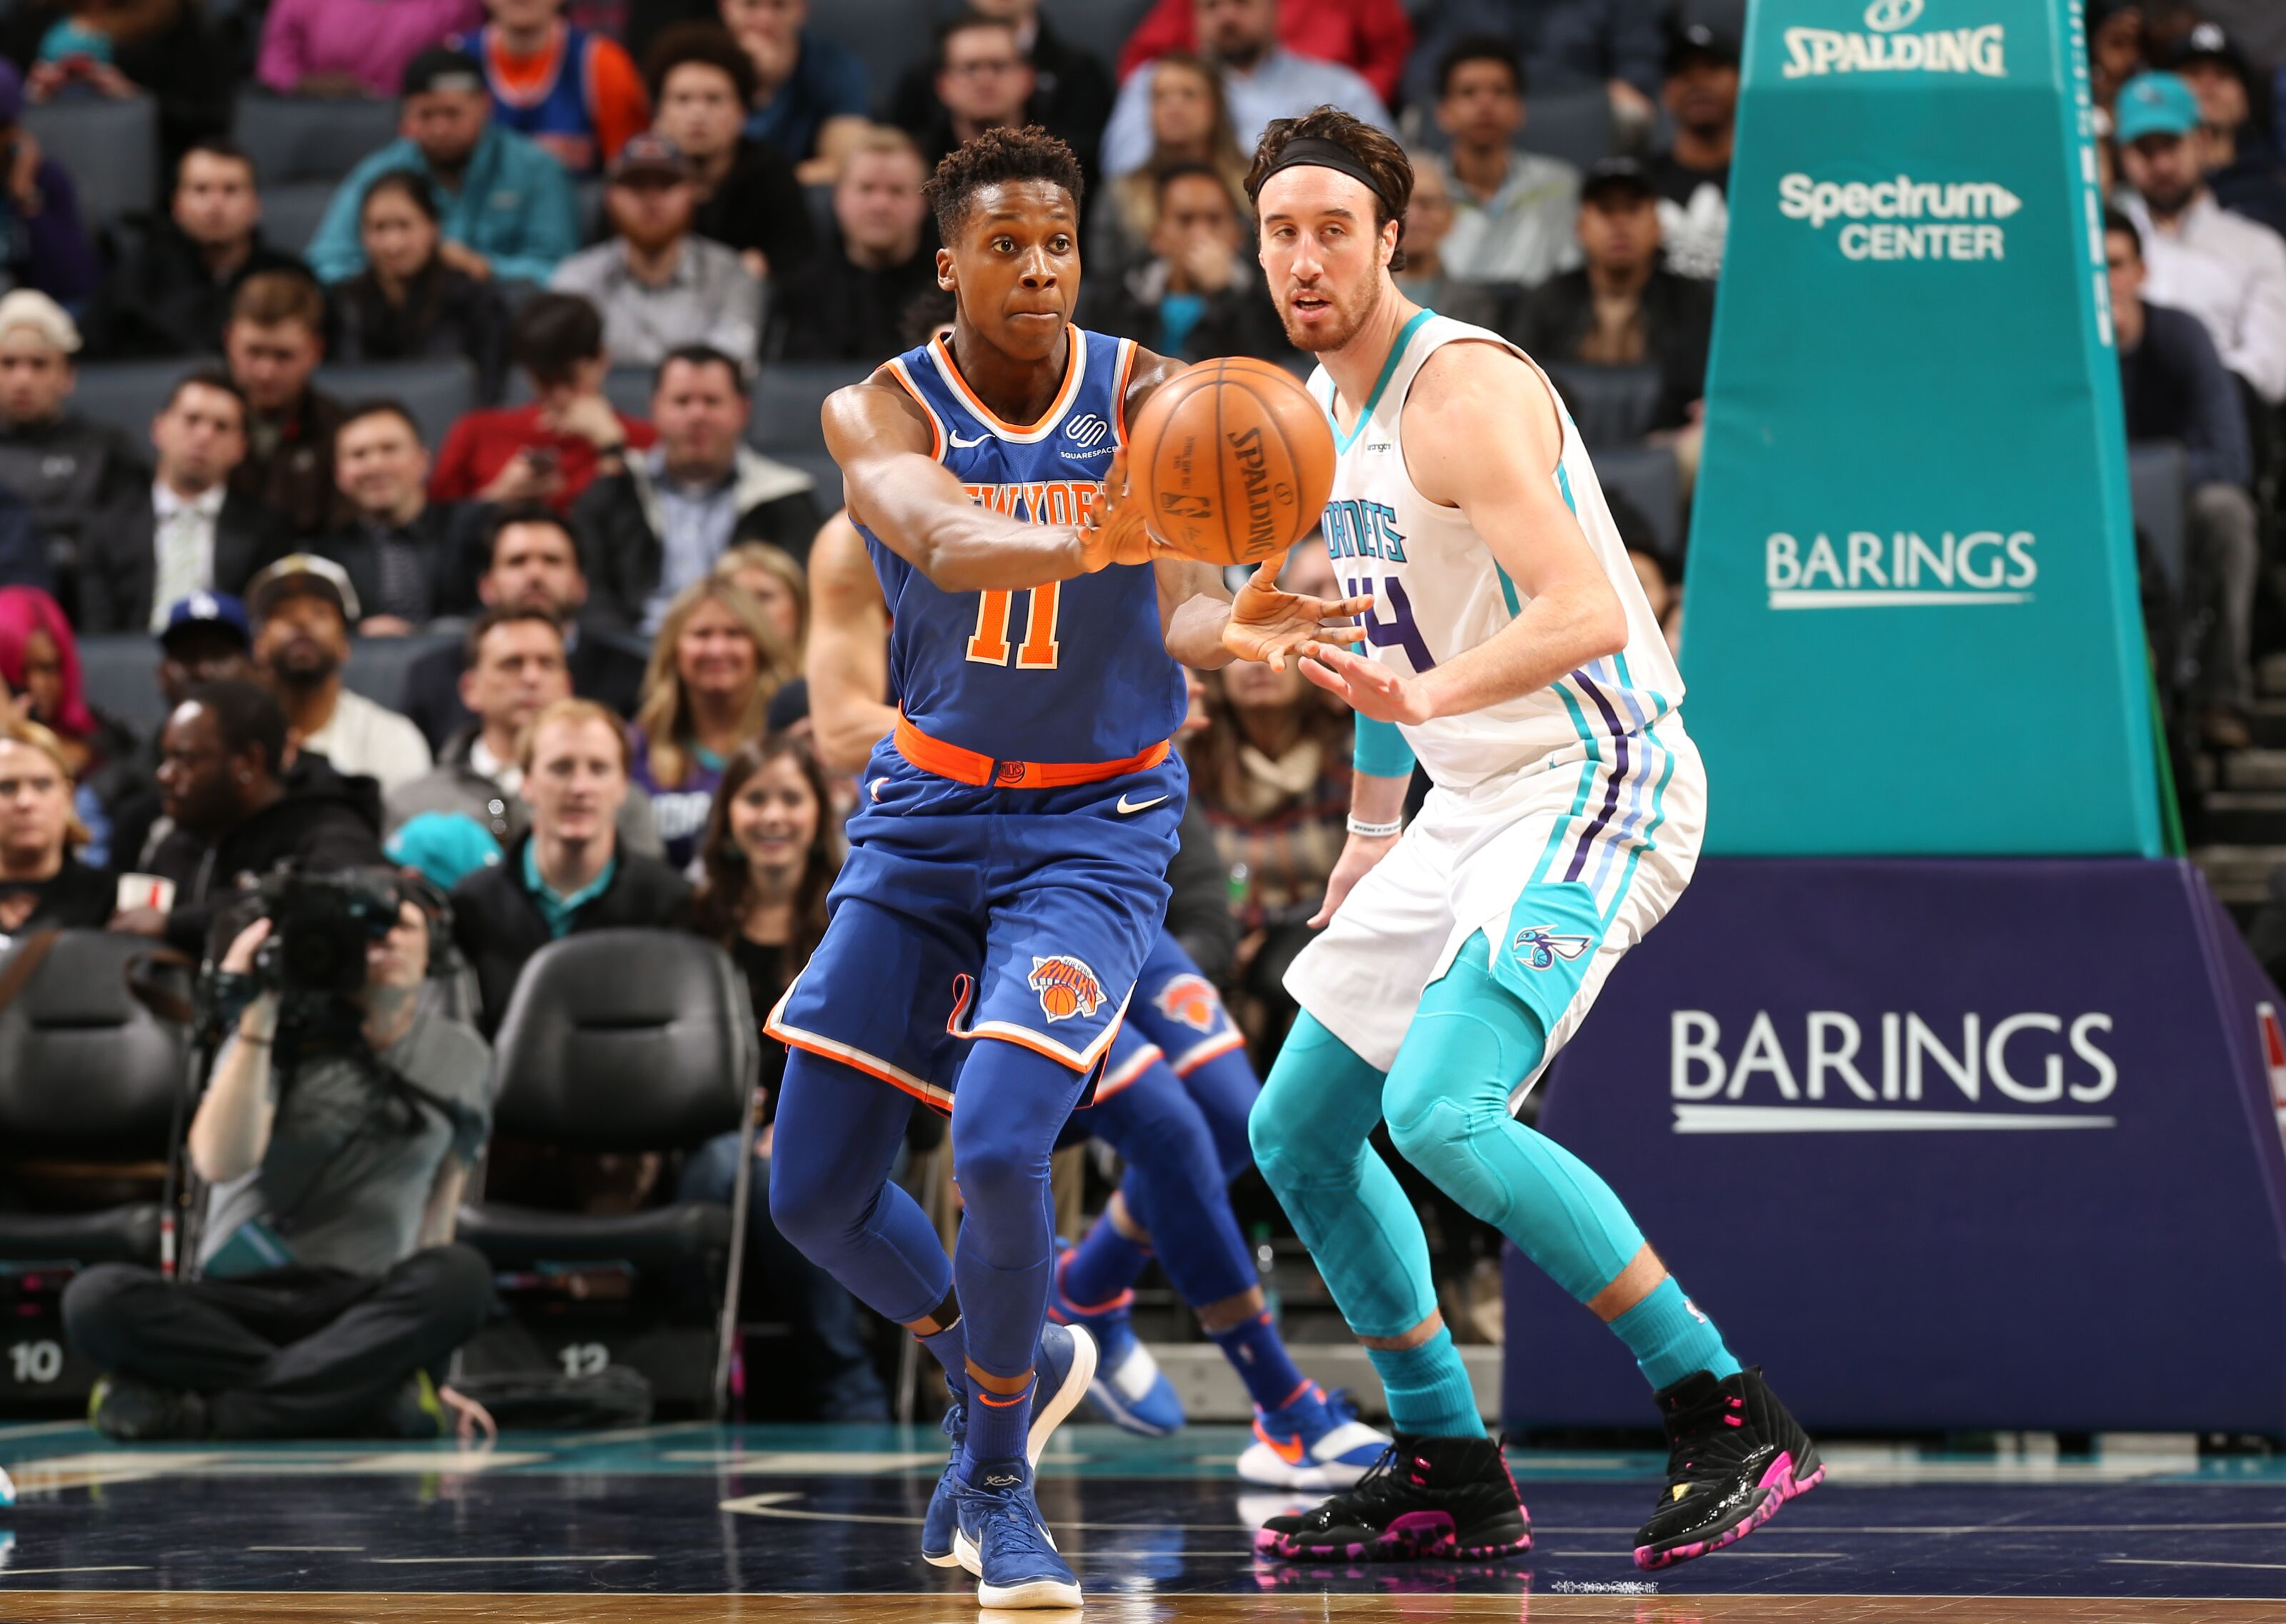 938390716-new-york-knicks-v-charlotte-hornets.jpg